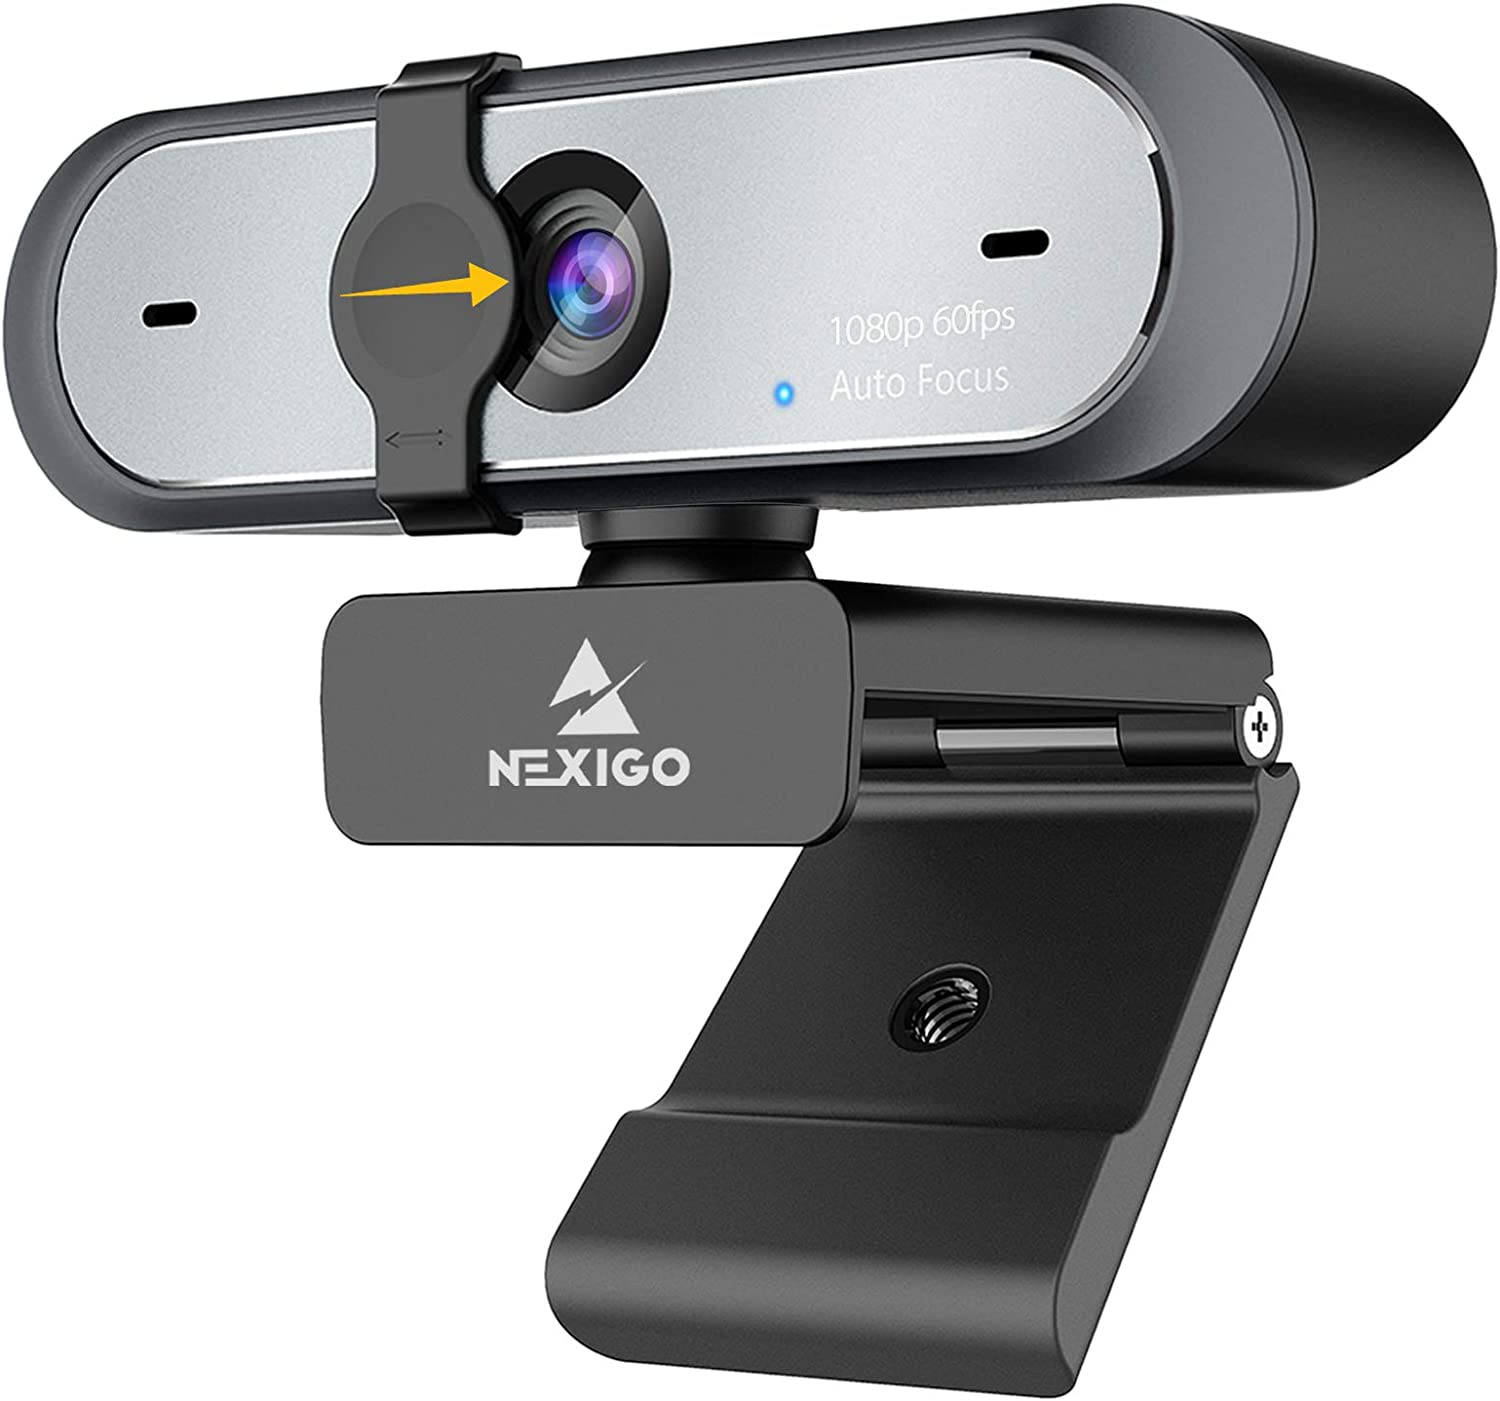 60FPS AutoFocus 1080P Webcam with Software Control, Dual Microphone & Cover, 2021 NexiGo N660P Pro HD USB Computer Web Camera, for OBS Gaming Zoom Skype FaceTime Teams